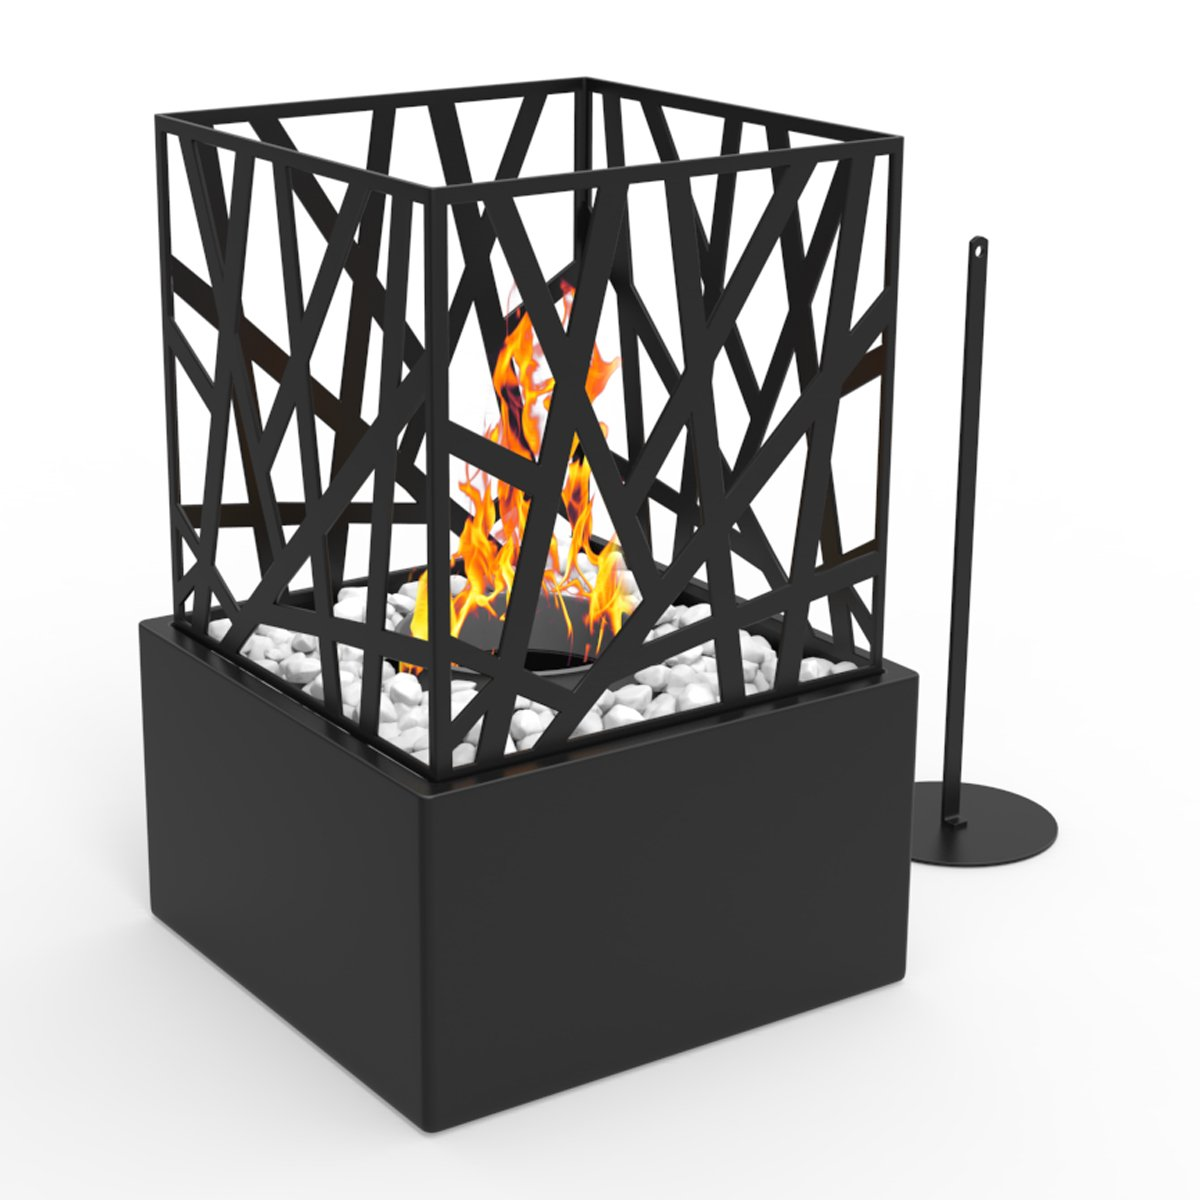 Regal Flame Bruno Ventless Indoor Outdoor Fire Pit Tabletop Portable Fire Bowl Pot Bio Ethanol Fireplace in Black - Realistic Clean Burning like Gel Fireplaces, or Propane Firepits by Regal Flame